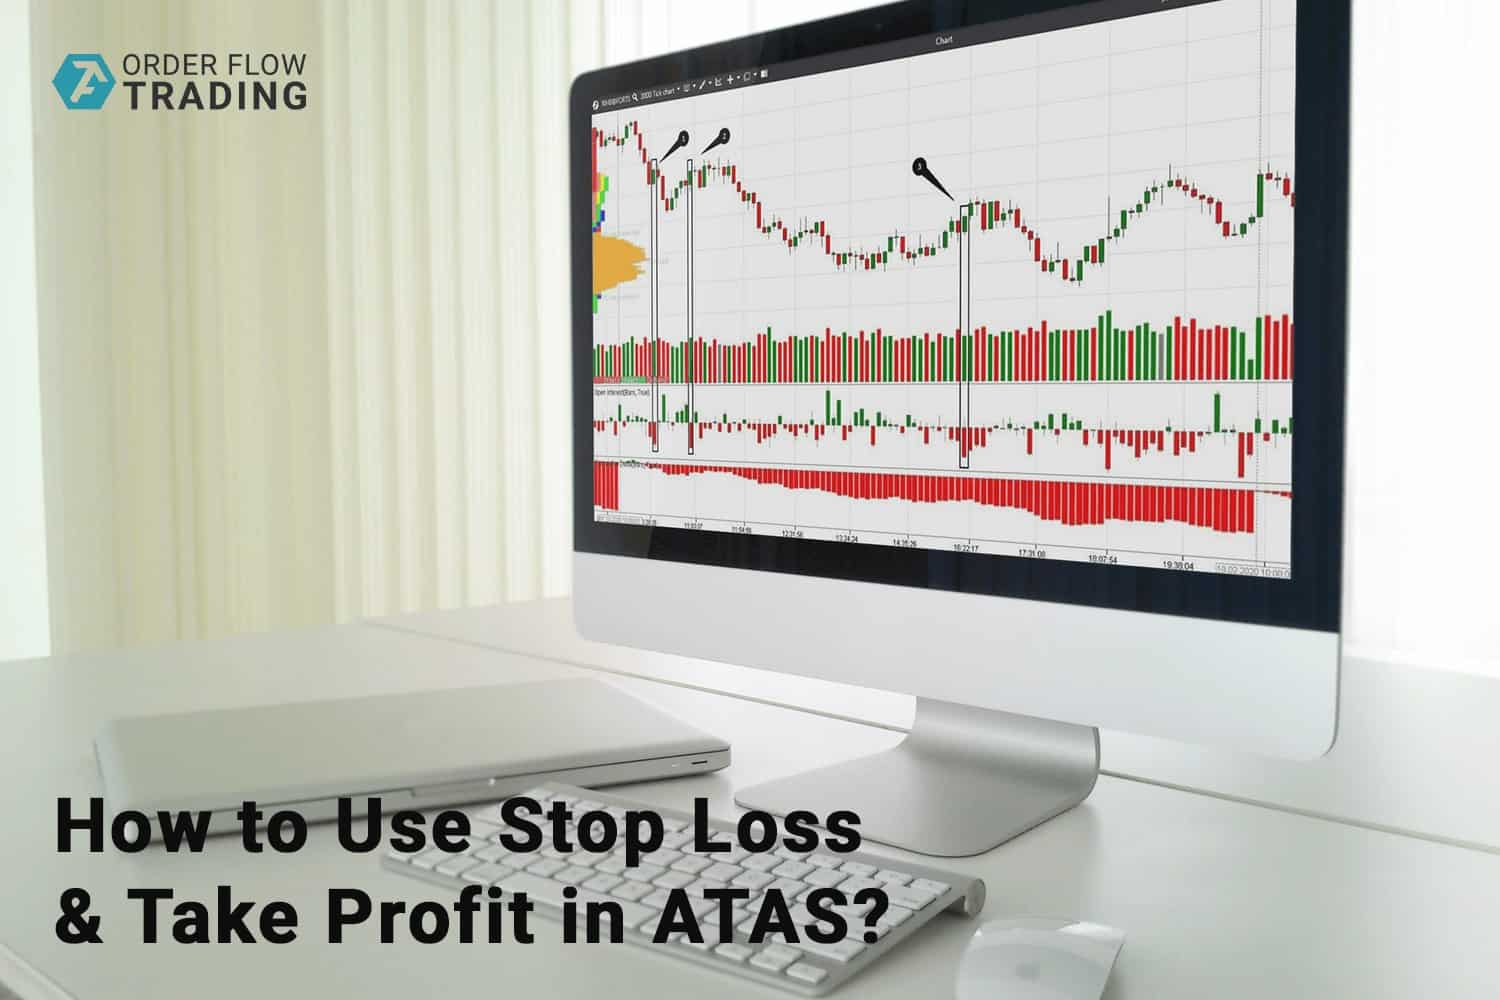 Using stop loss and take profit in ATAS